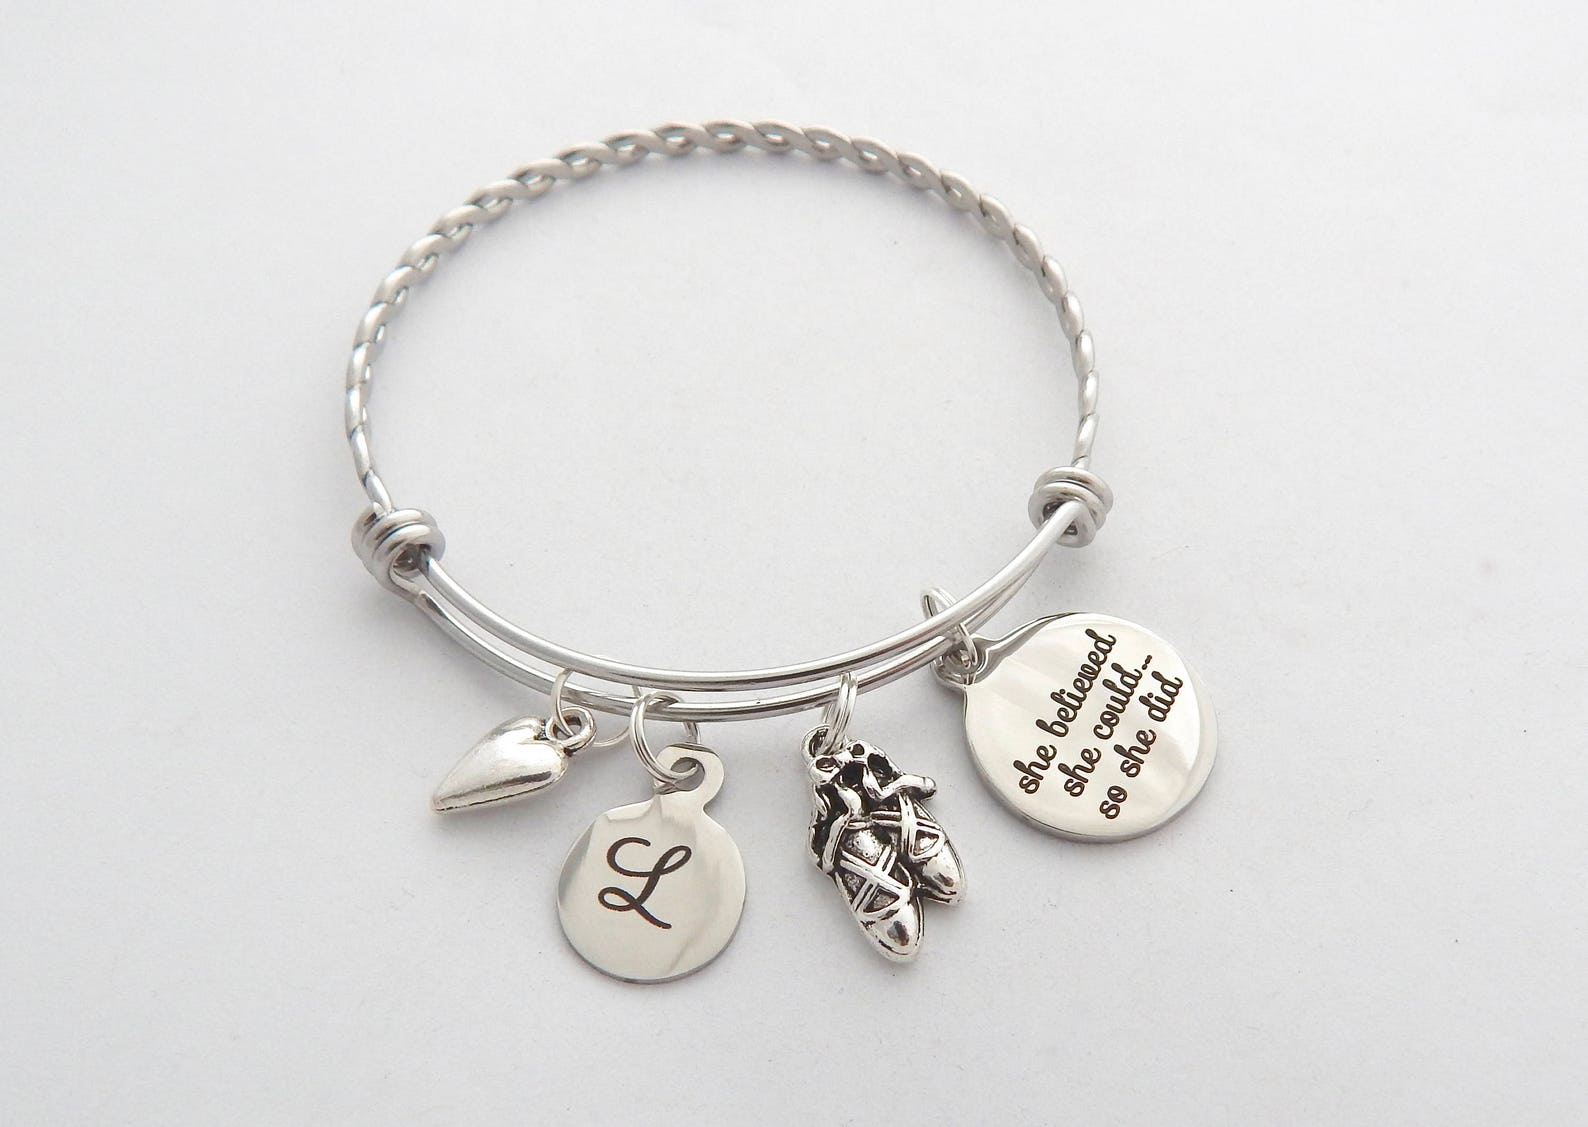 ballet teacher gift-dance instructor gift- gift ideas for dancers- gifts for dance teachers- ballet shoes bangle-ballet jewelry-